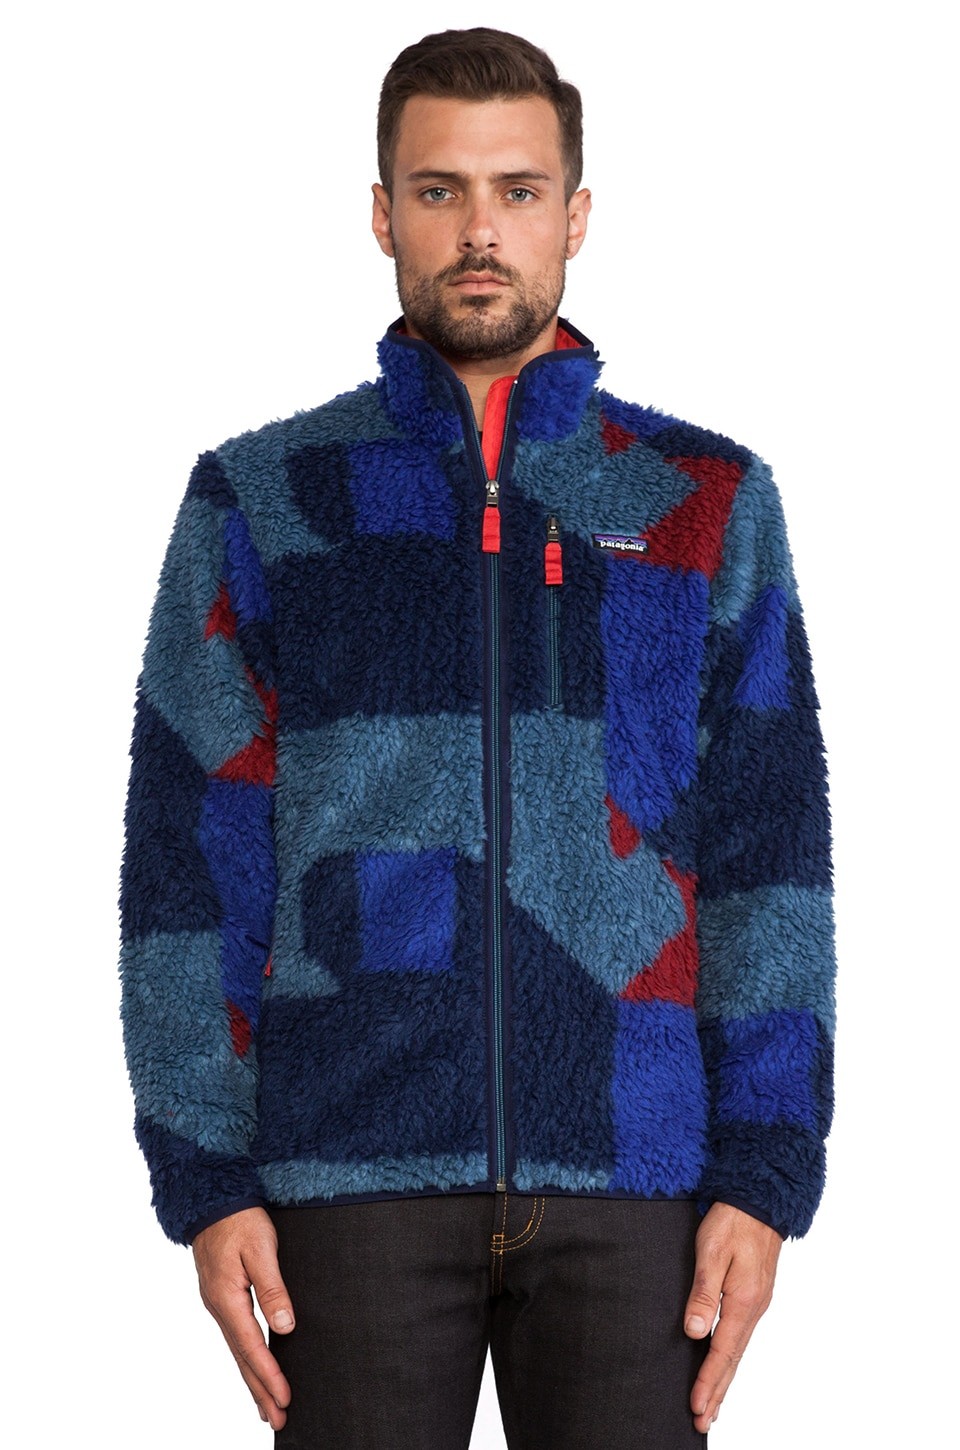 Patagonia Blocks Classic Retro-X Cardigan in Glass Blue & Cochineal Red